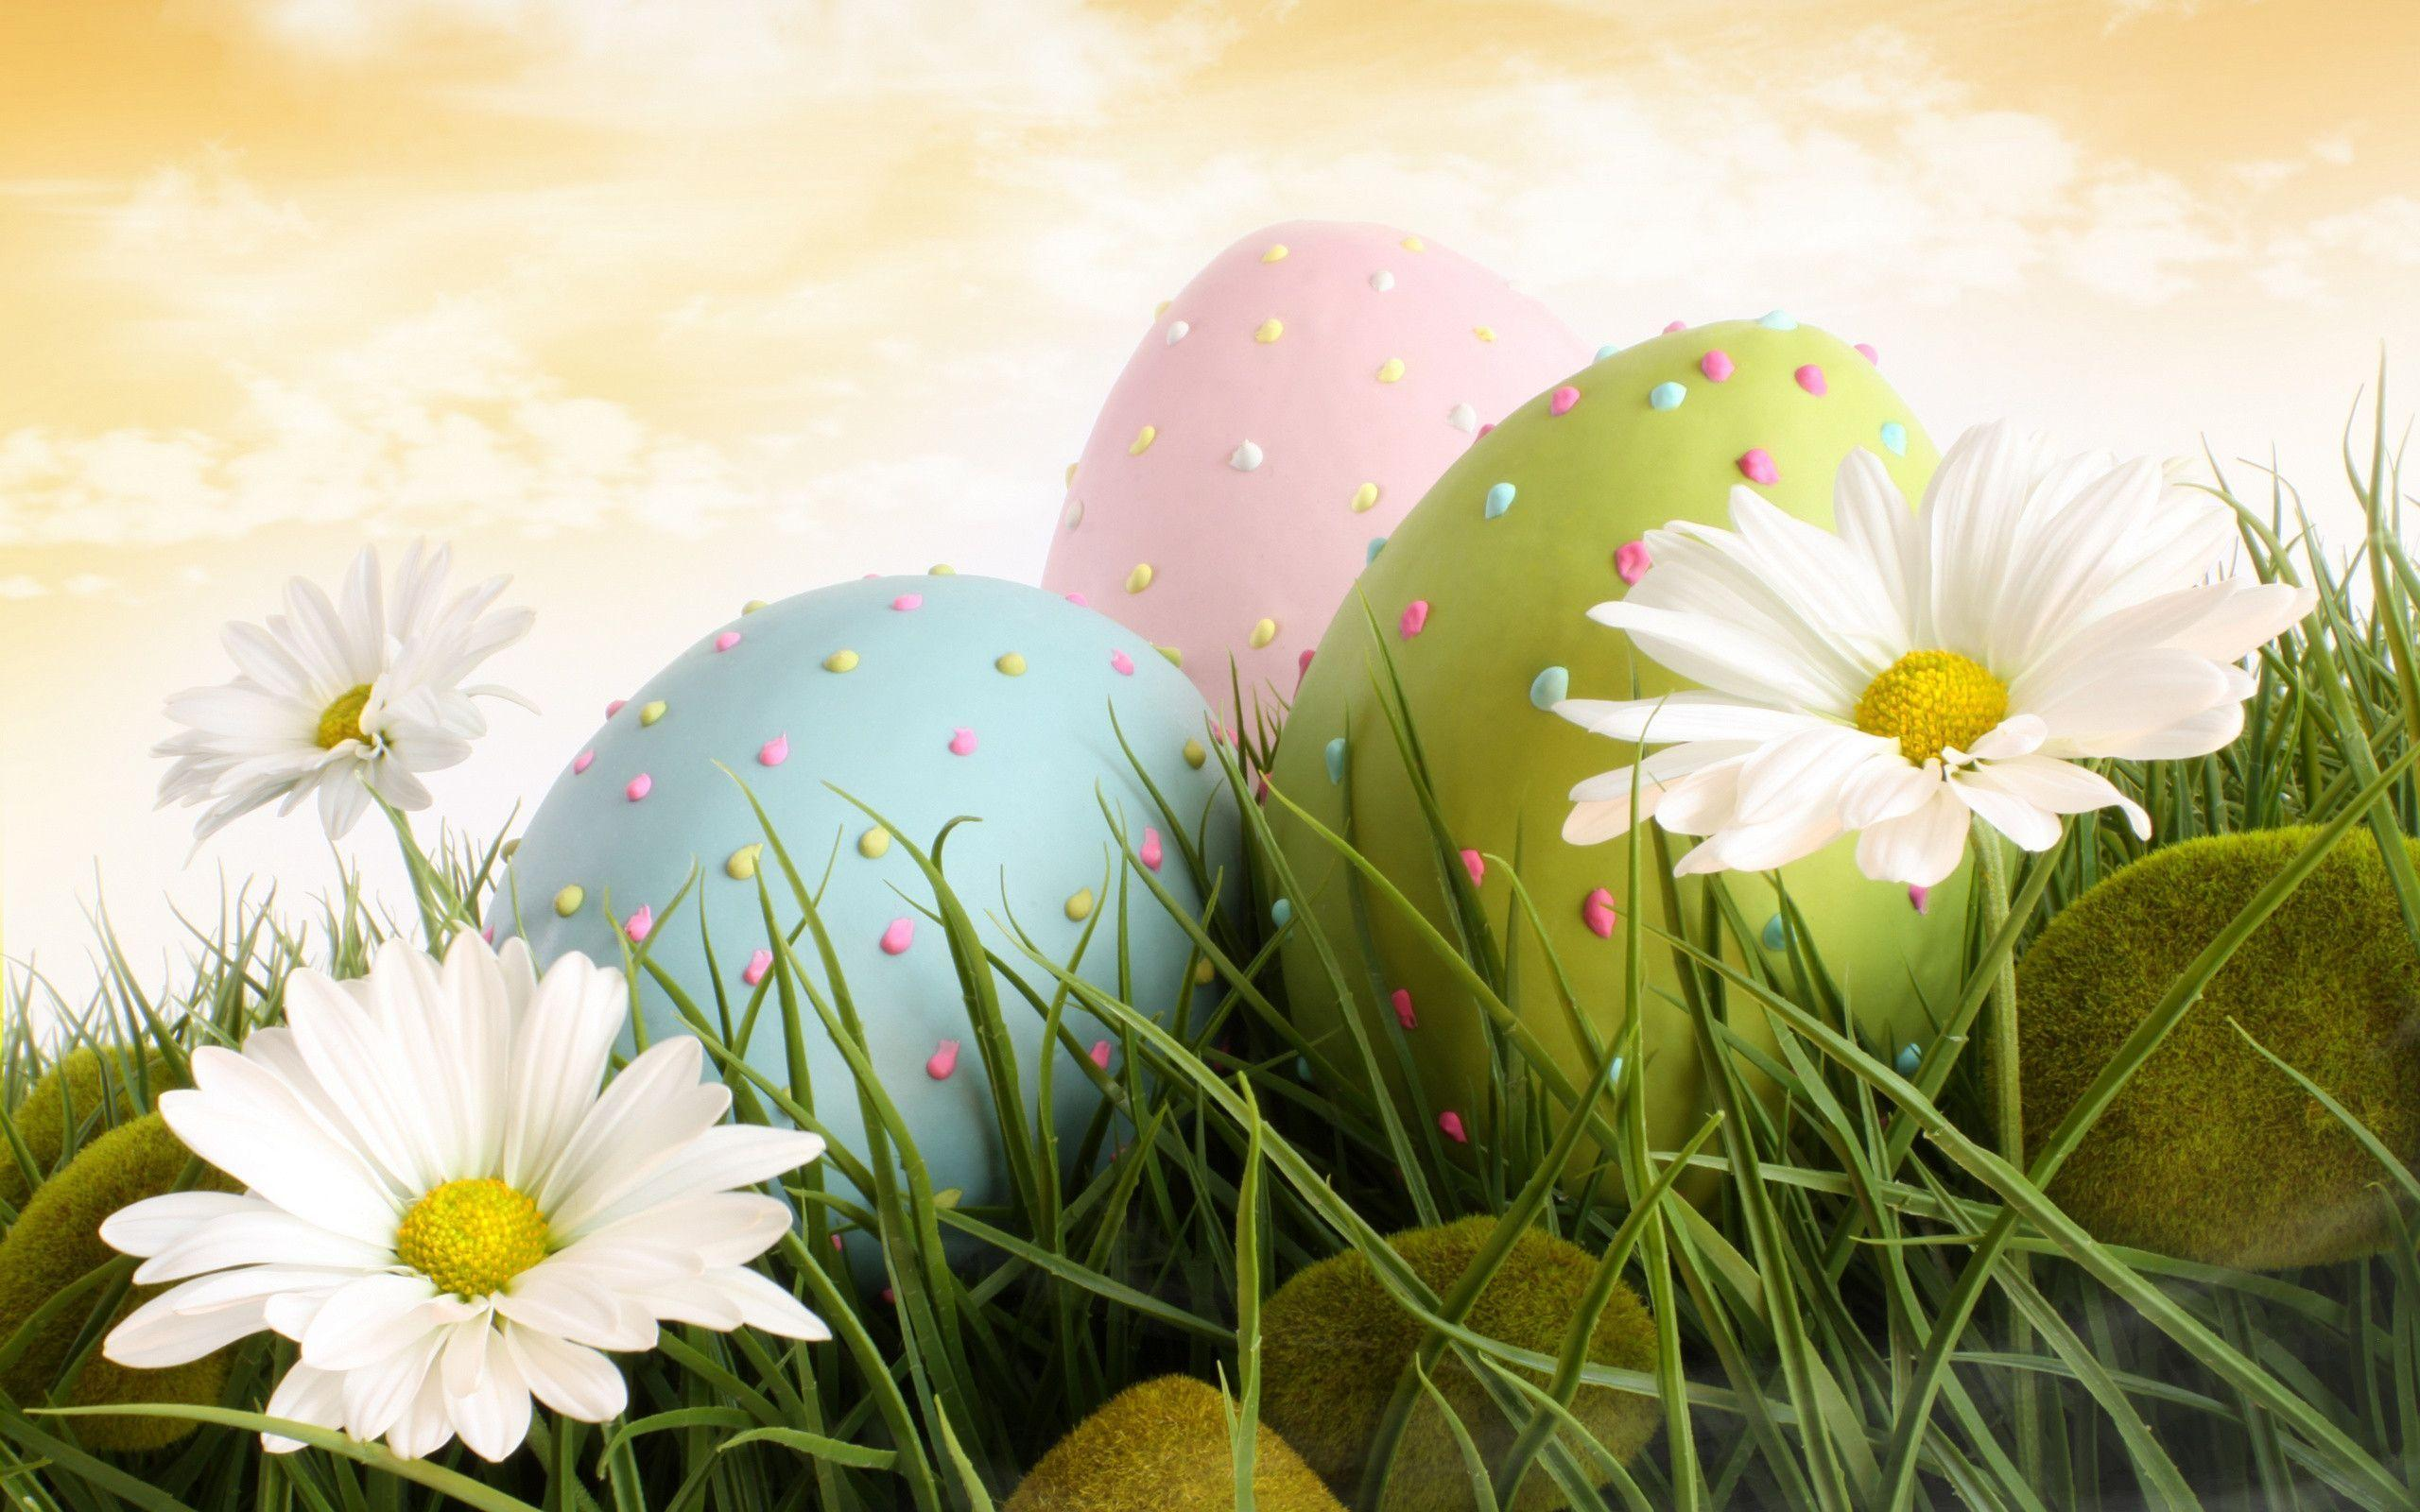 Dream Spring 2012 - easter Wallpapers - HD Wallpapers 96616